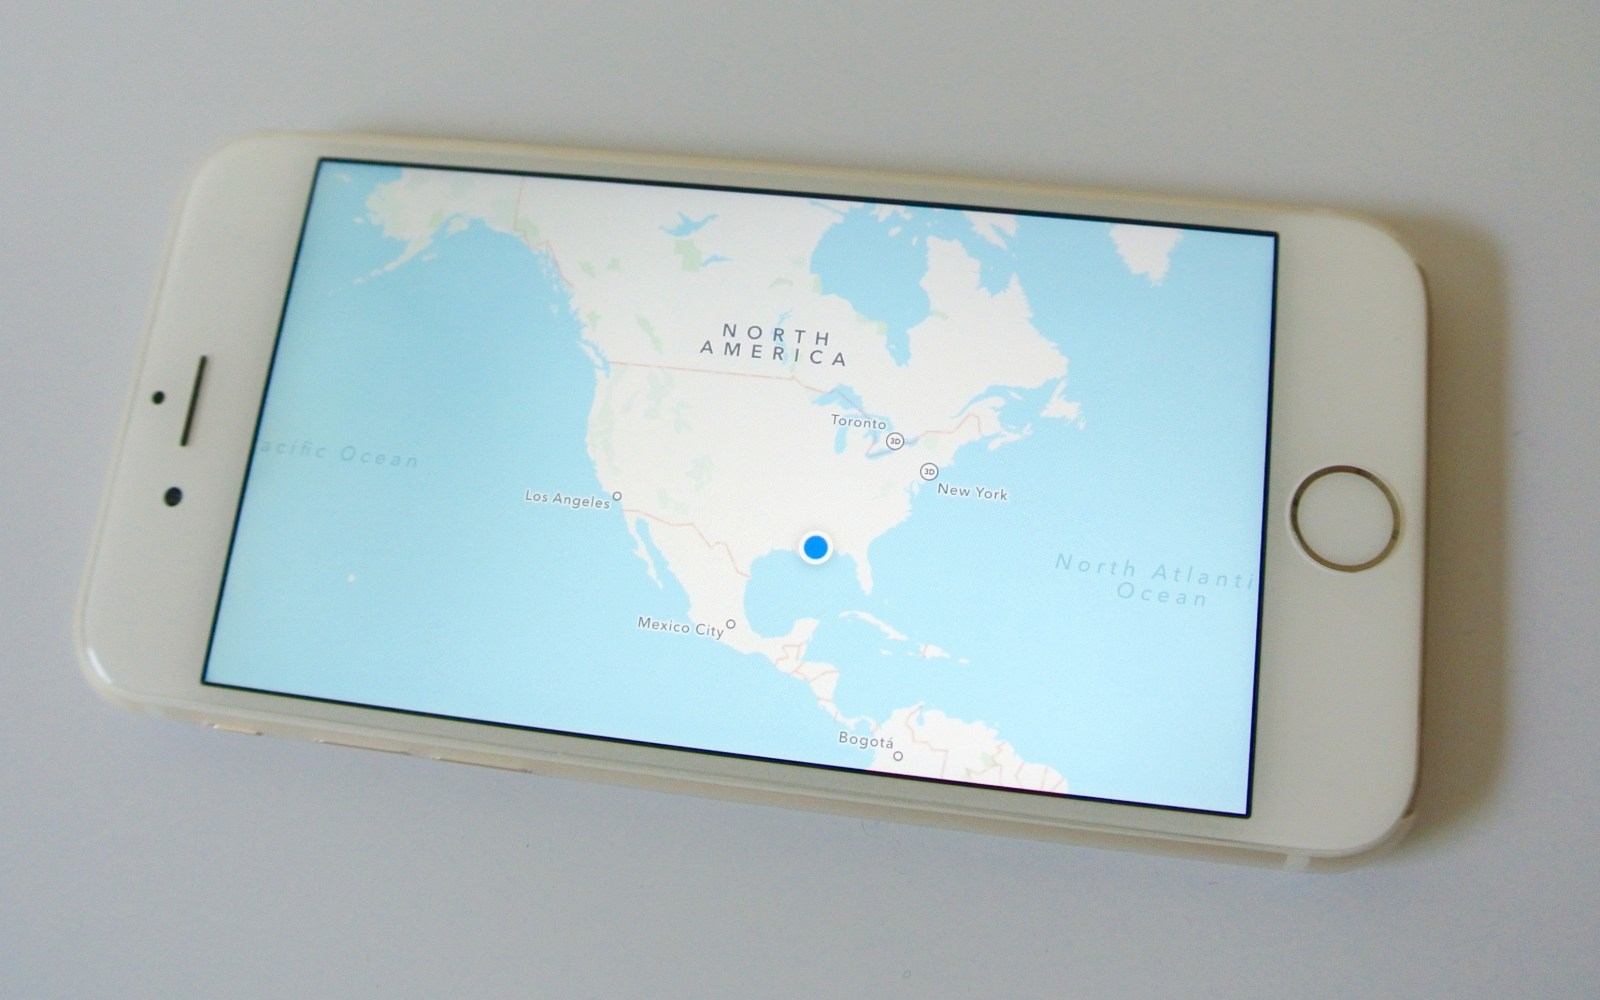 Report: After fatal accident, Apple says it is working to add rail crossing data to Maps